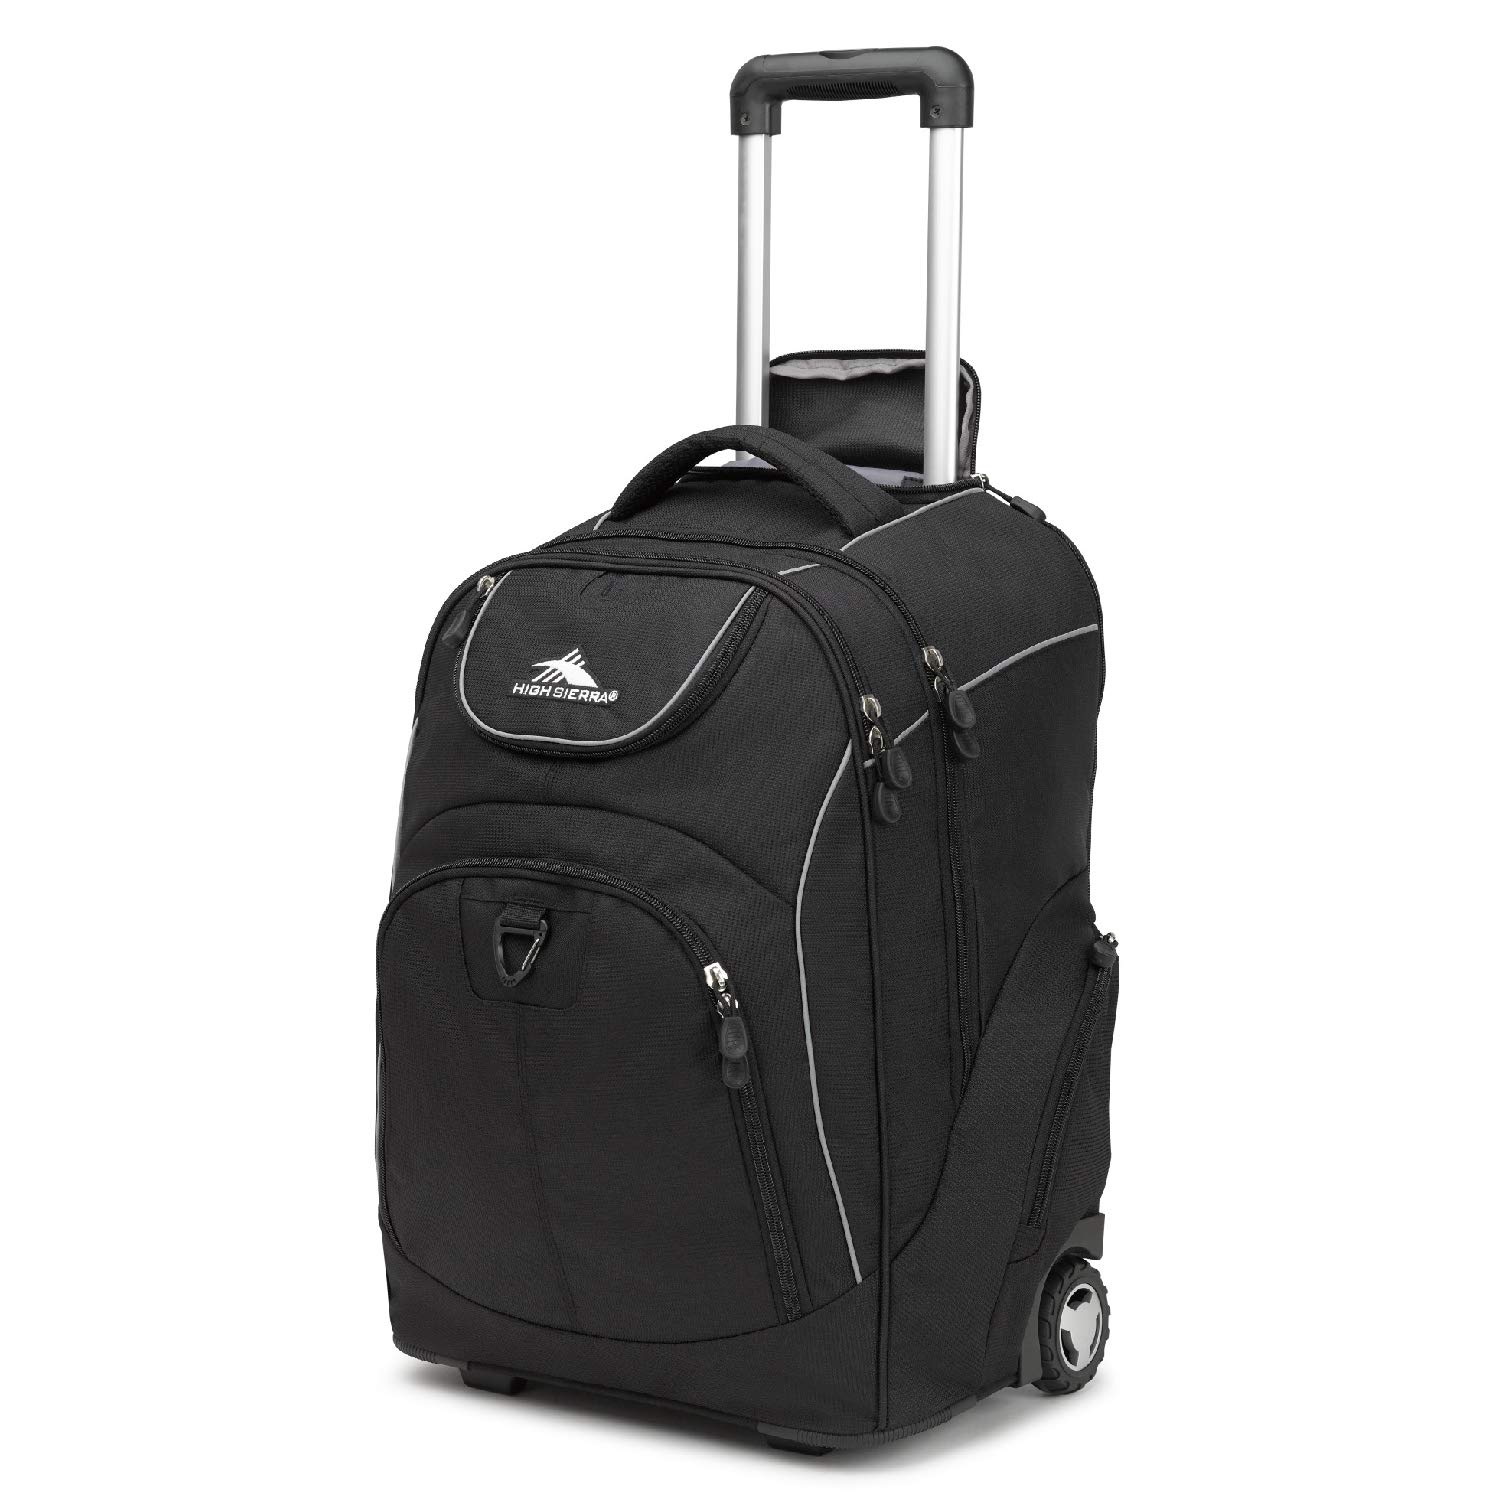 High Sierra Powerglide Wheeled Laptop Backpack for School  Fits Most 17 inch Models